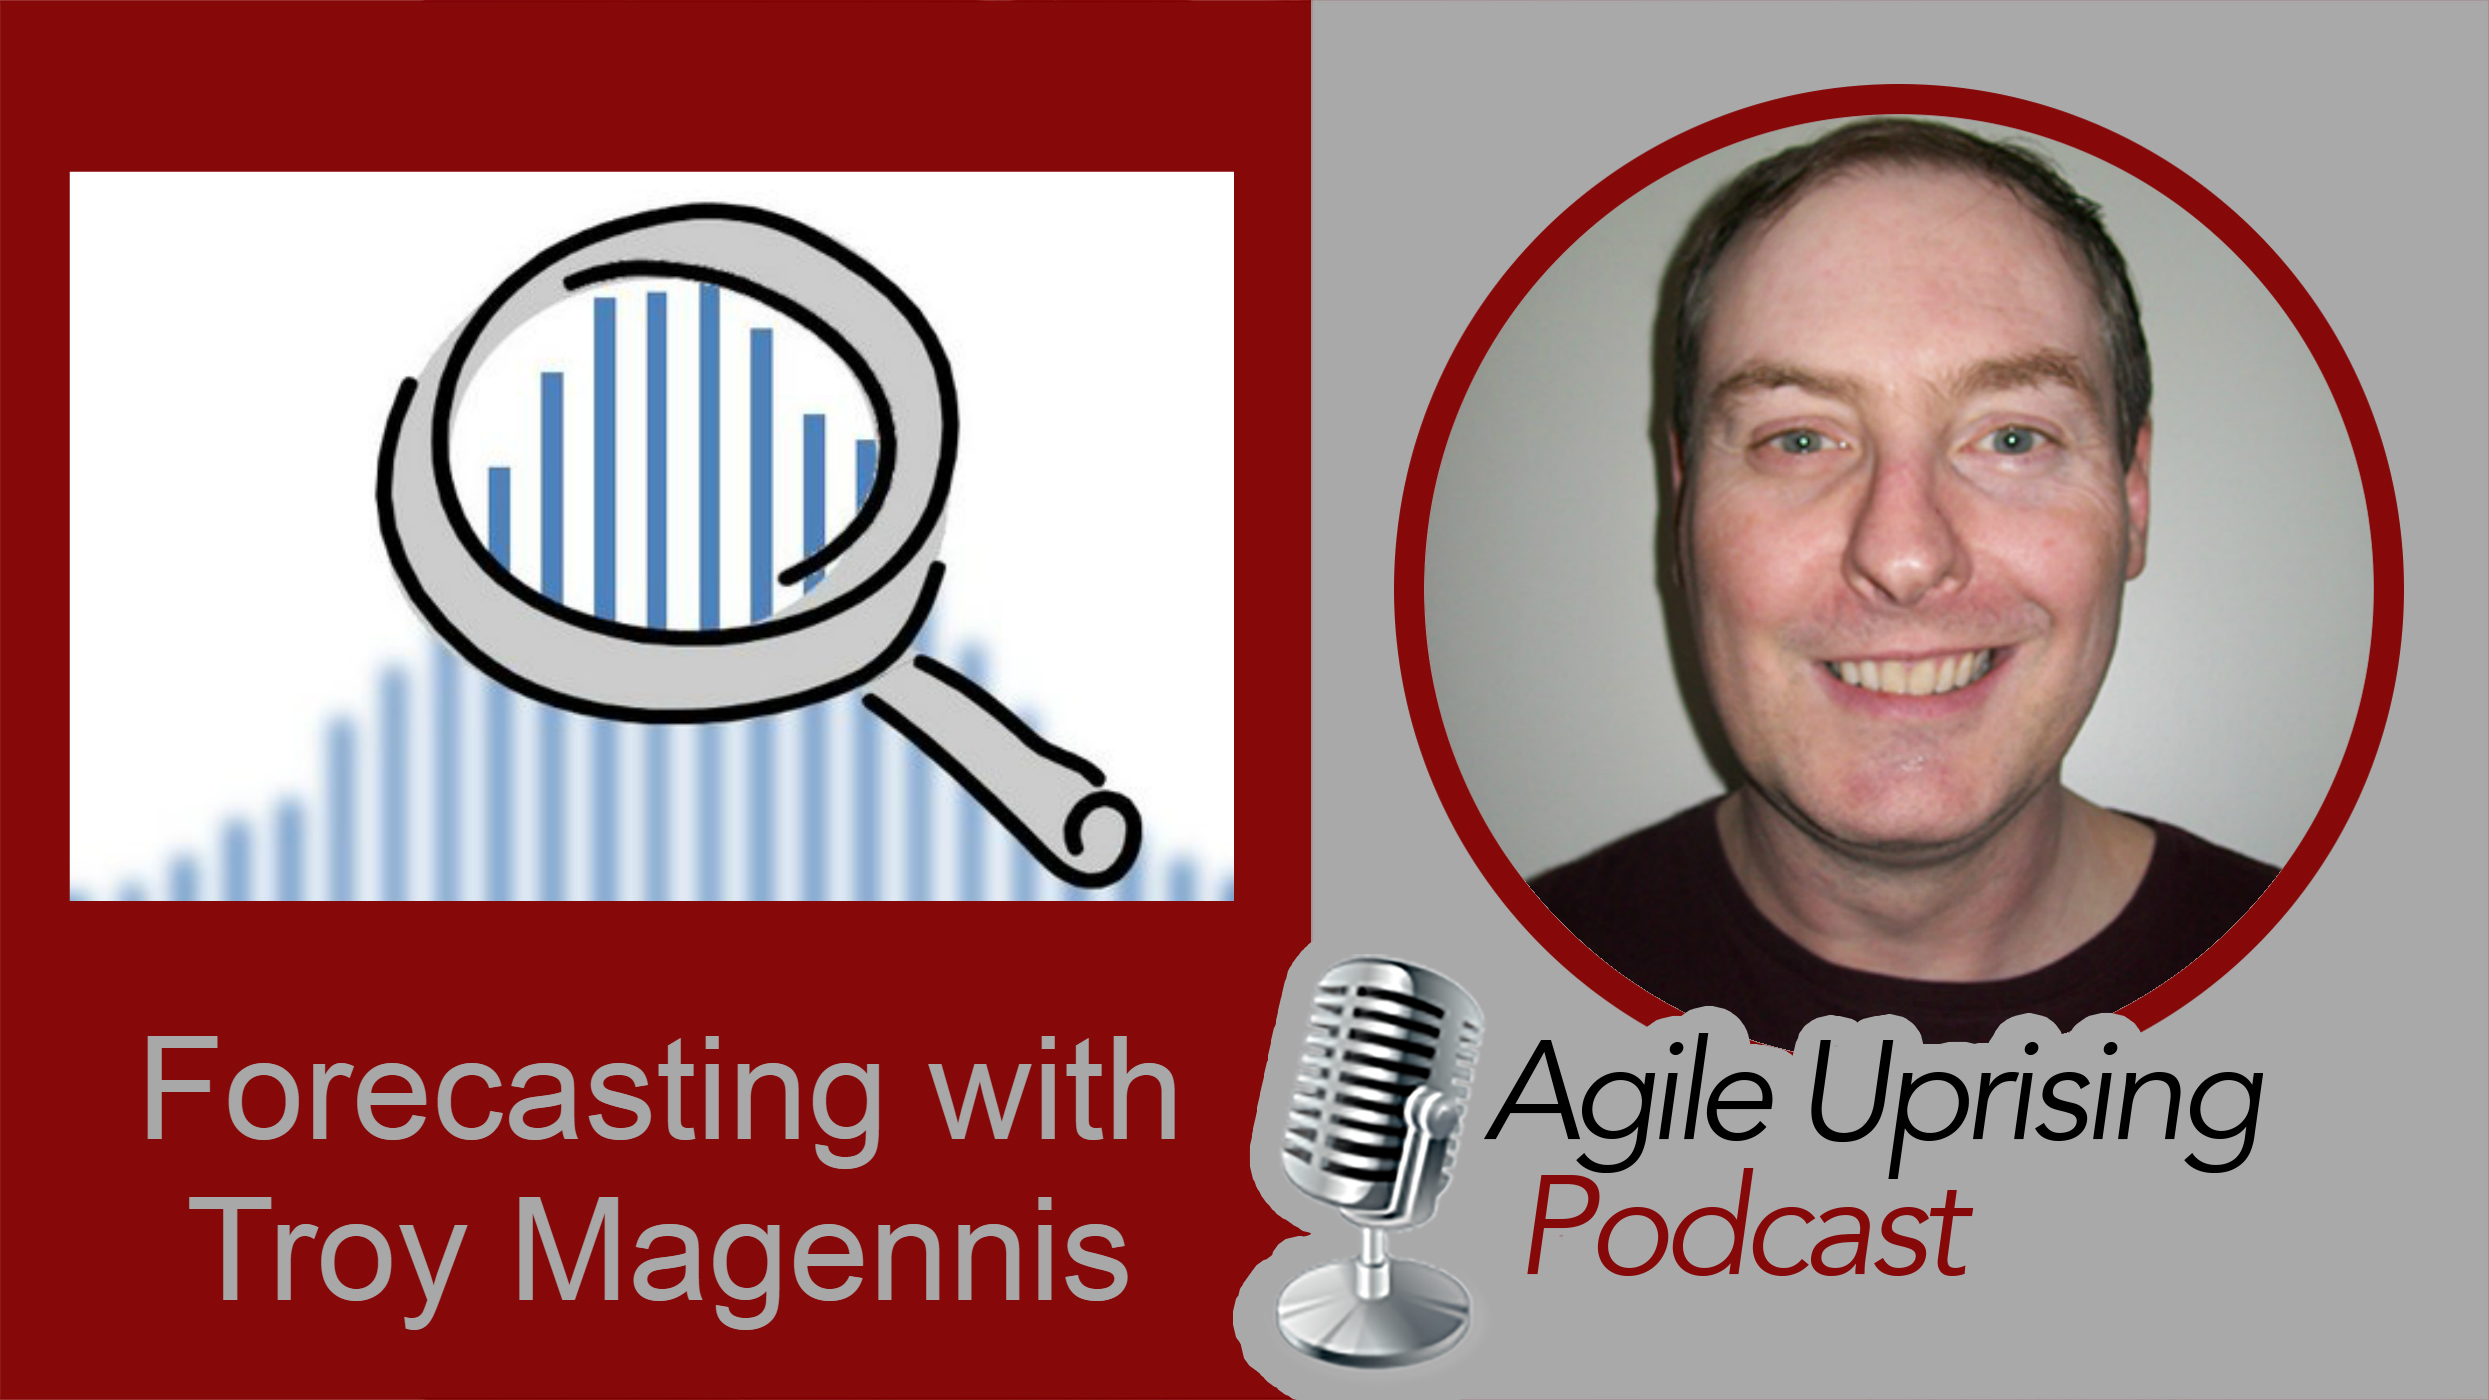 Forecasting with Troy Magennis